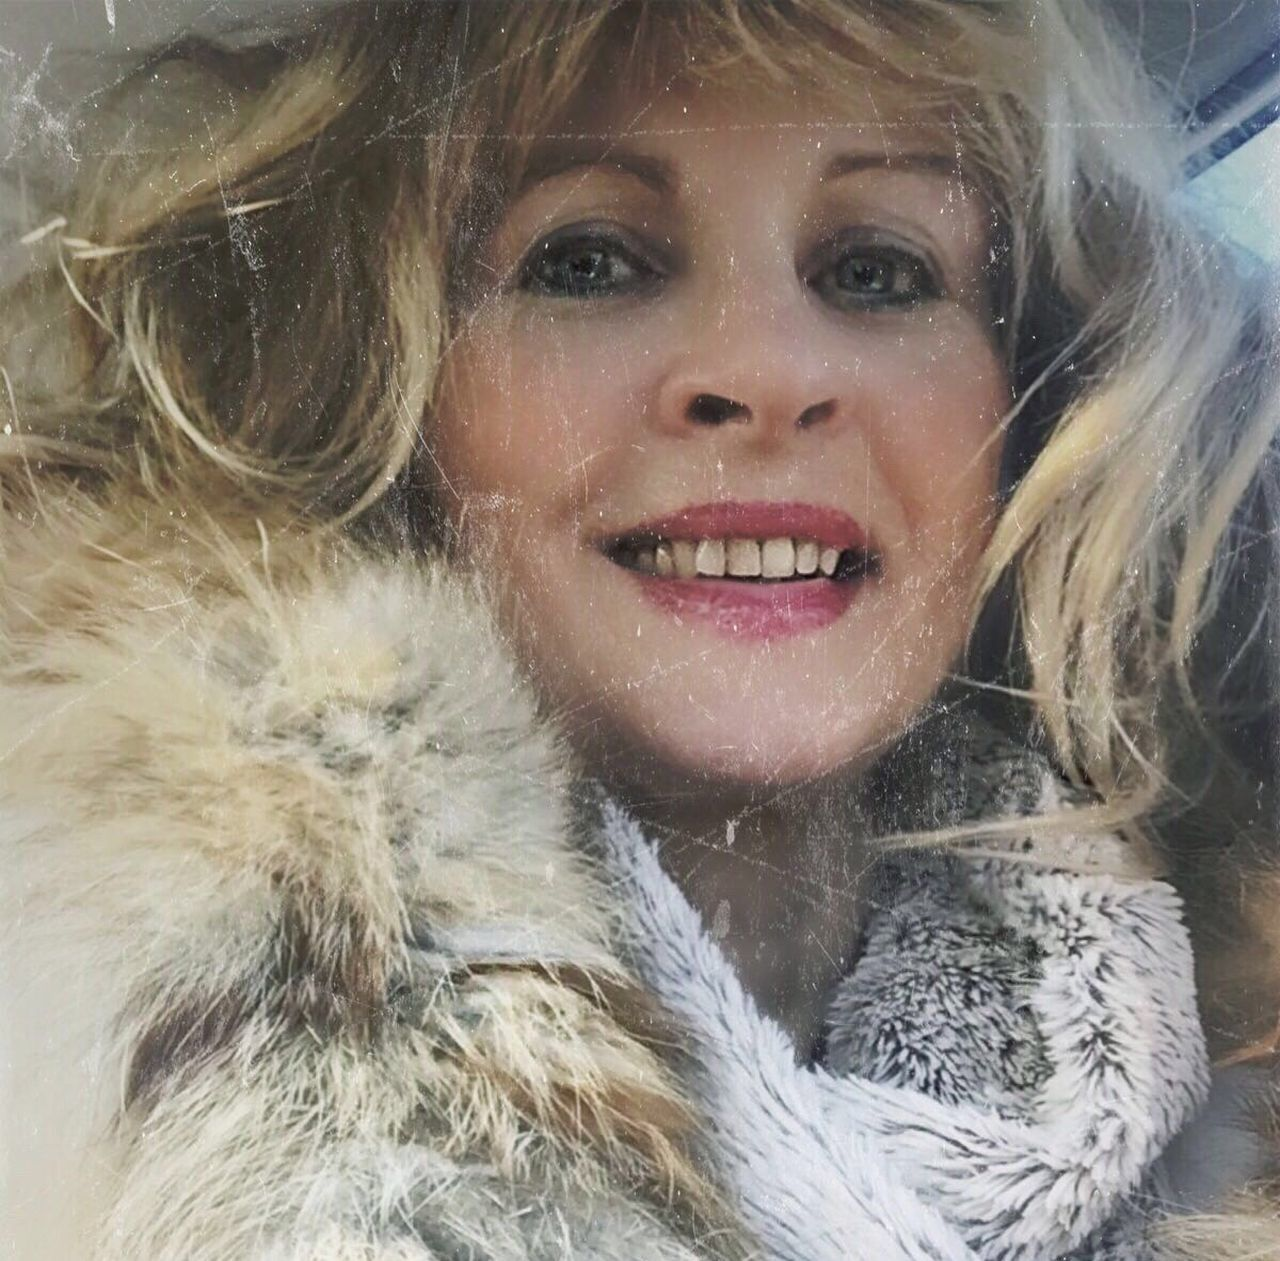 EyeEmNewHere Warm Clothing Fur Coat Looking At Camera Fur Only Women Cold Temperature Portrait Beautiful People One Woman Only Beauty Winter One Person Adults Only Beautiful Woman Close-up Smiling Adult Snow Cheerful People